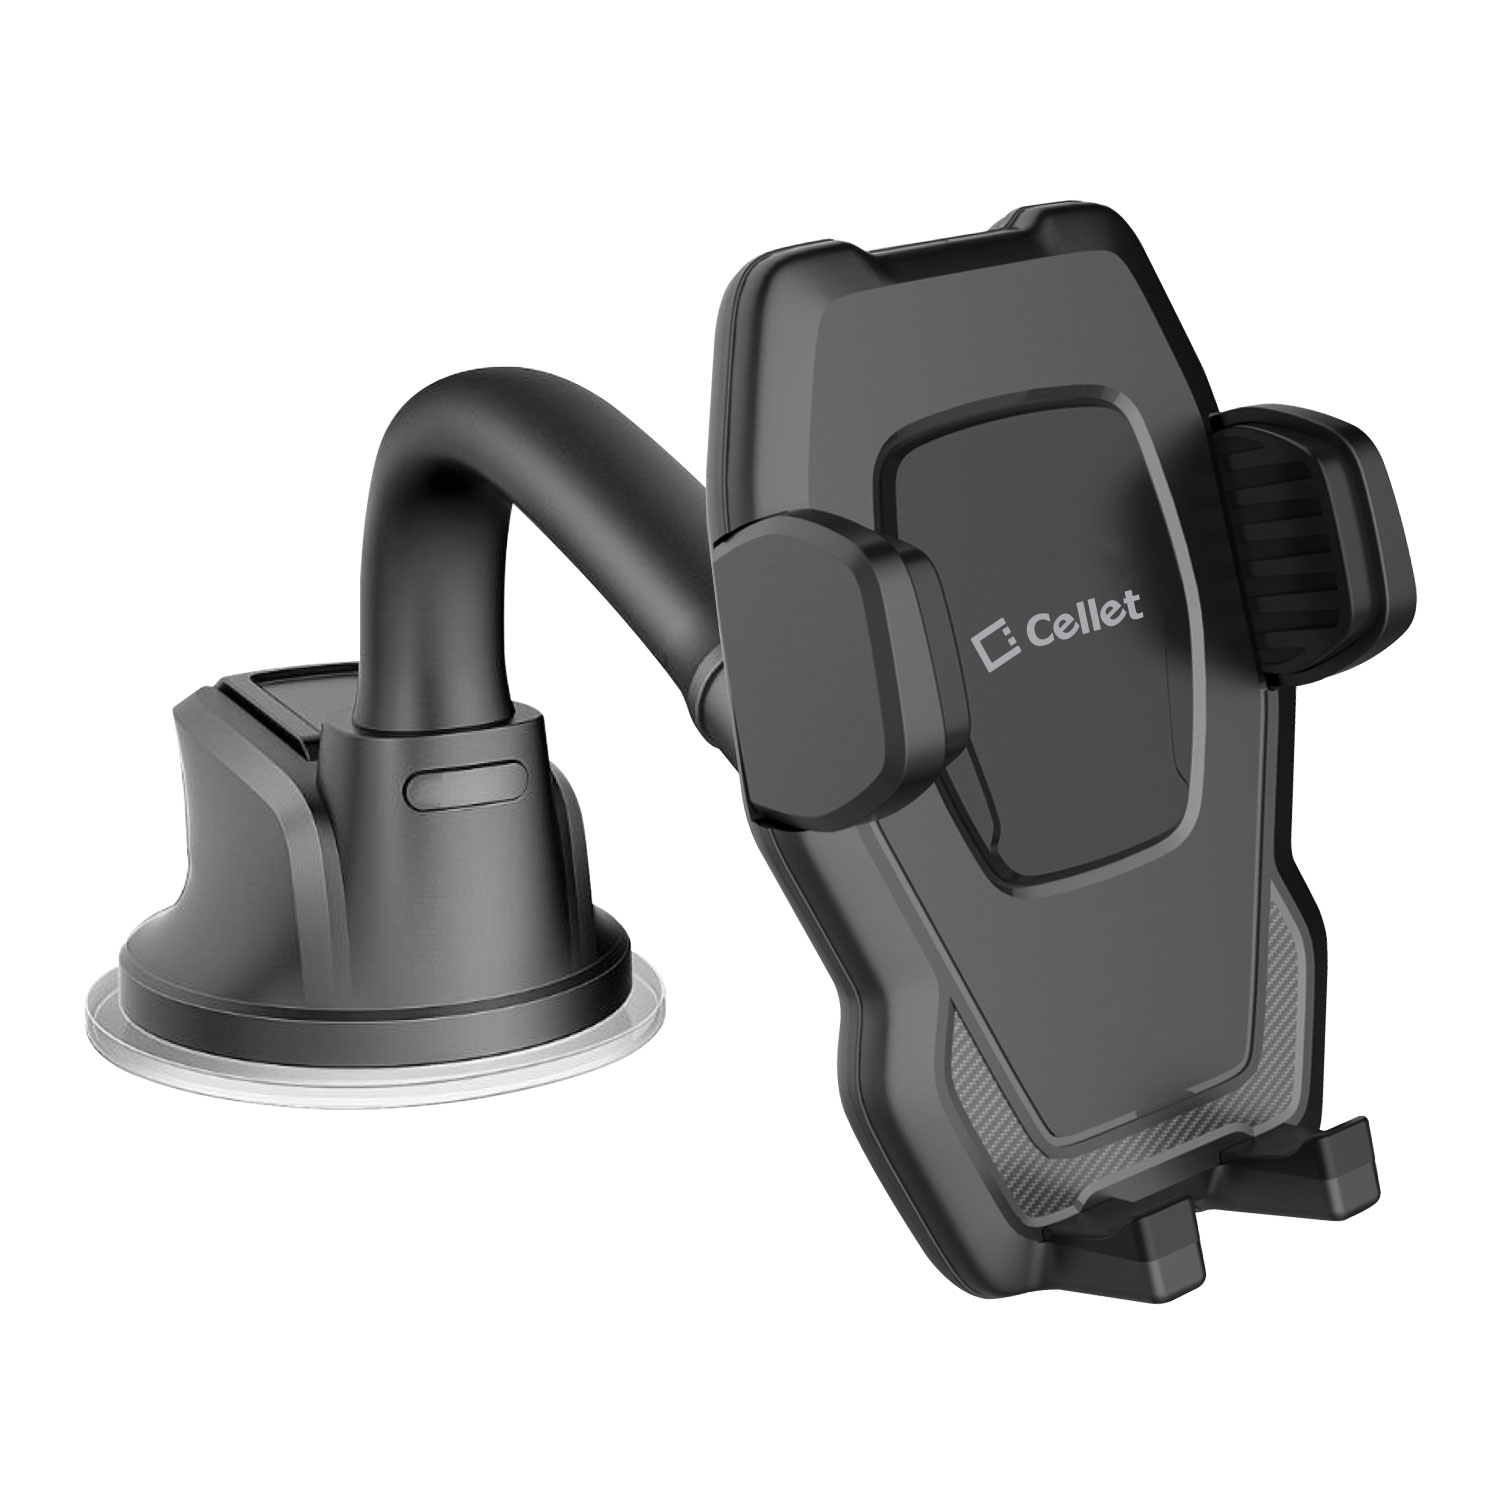 Samsung Galaxy A10e Windshield Phone Holder Goose Neck Black